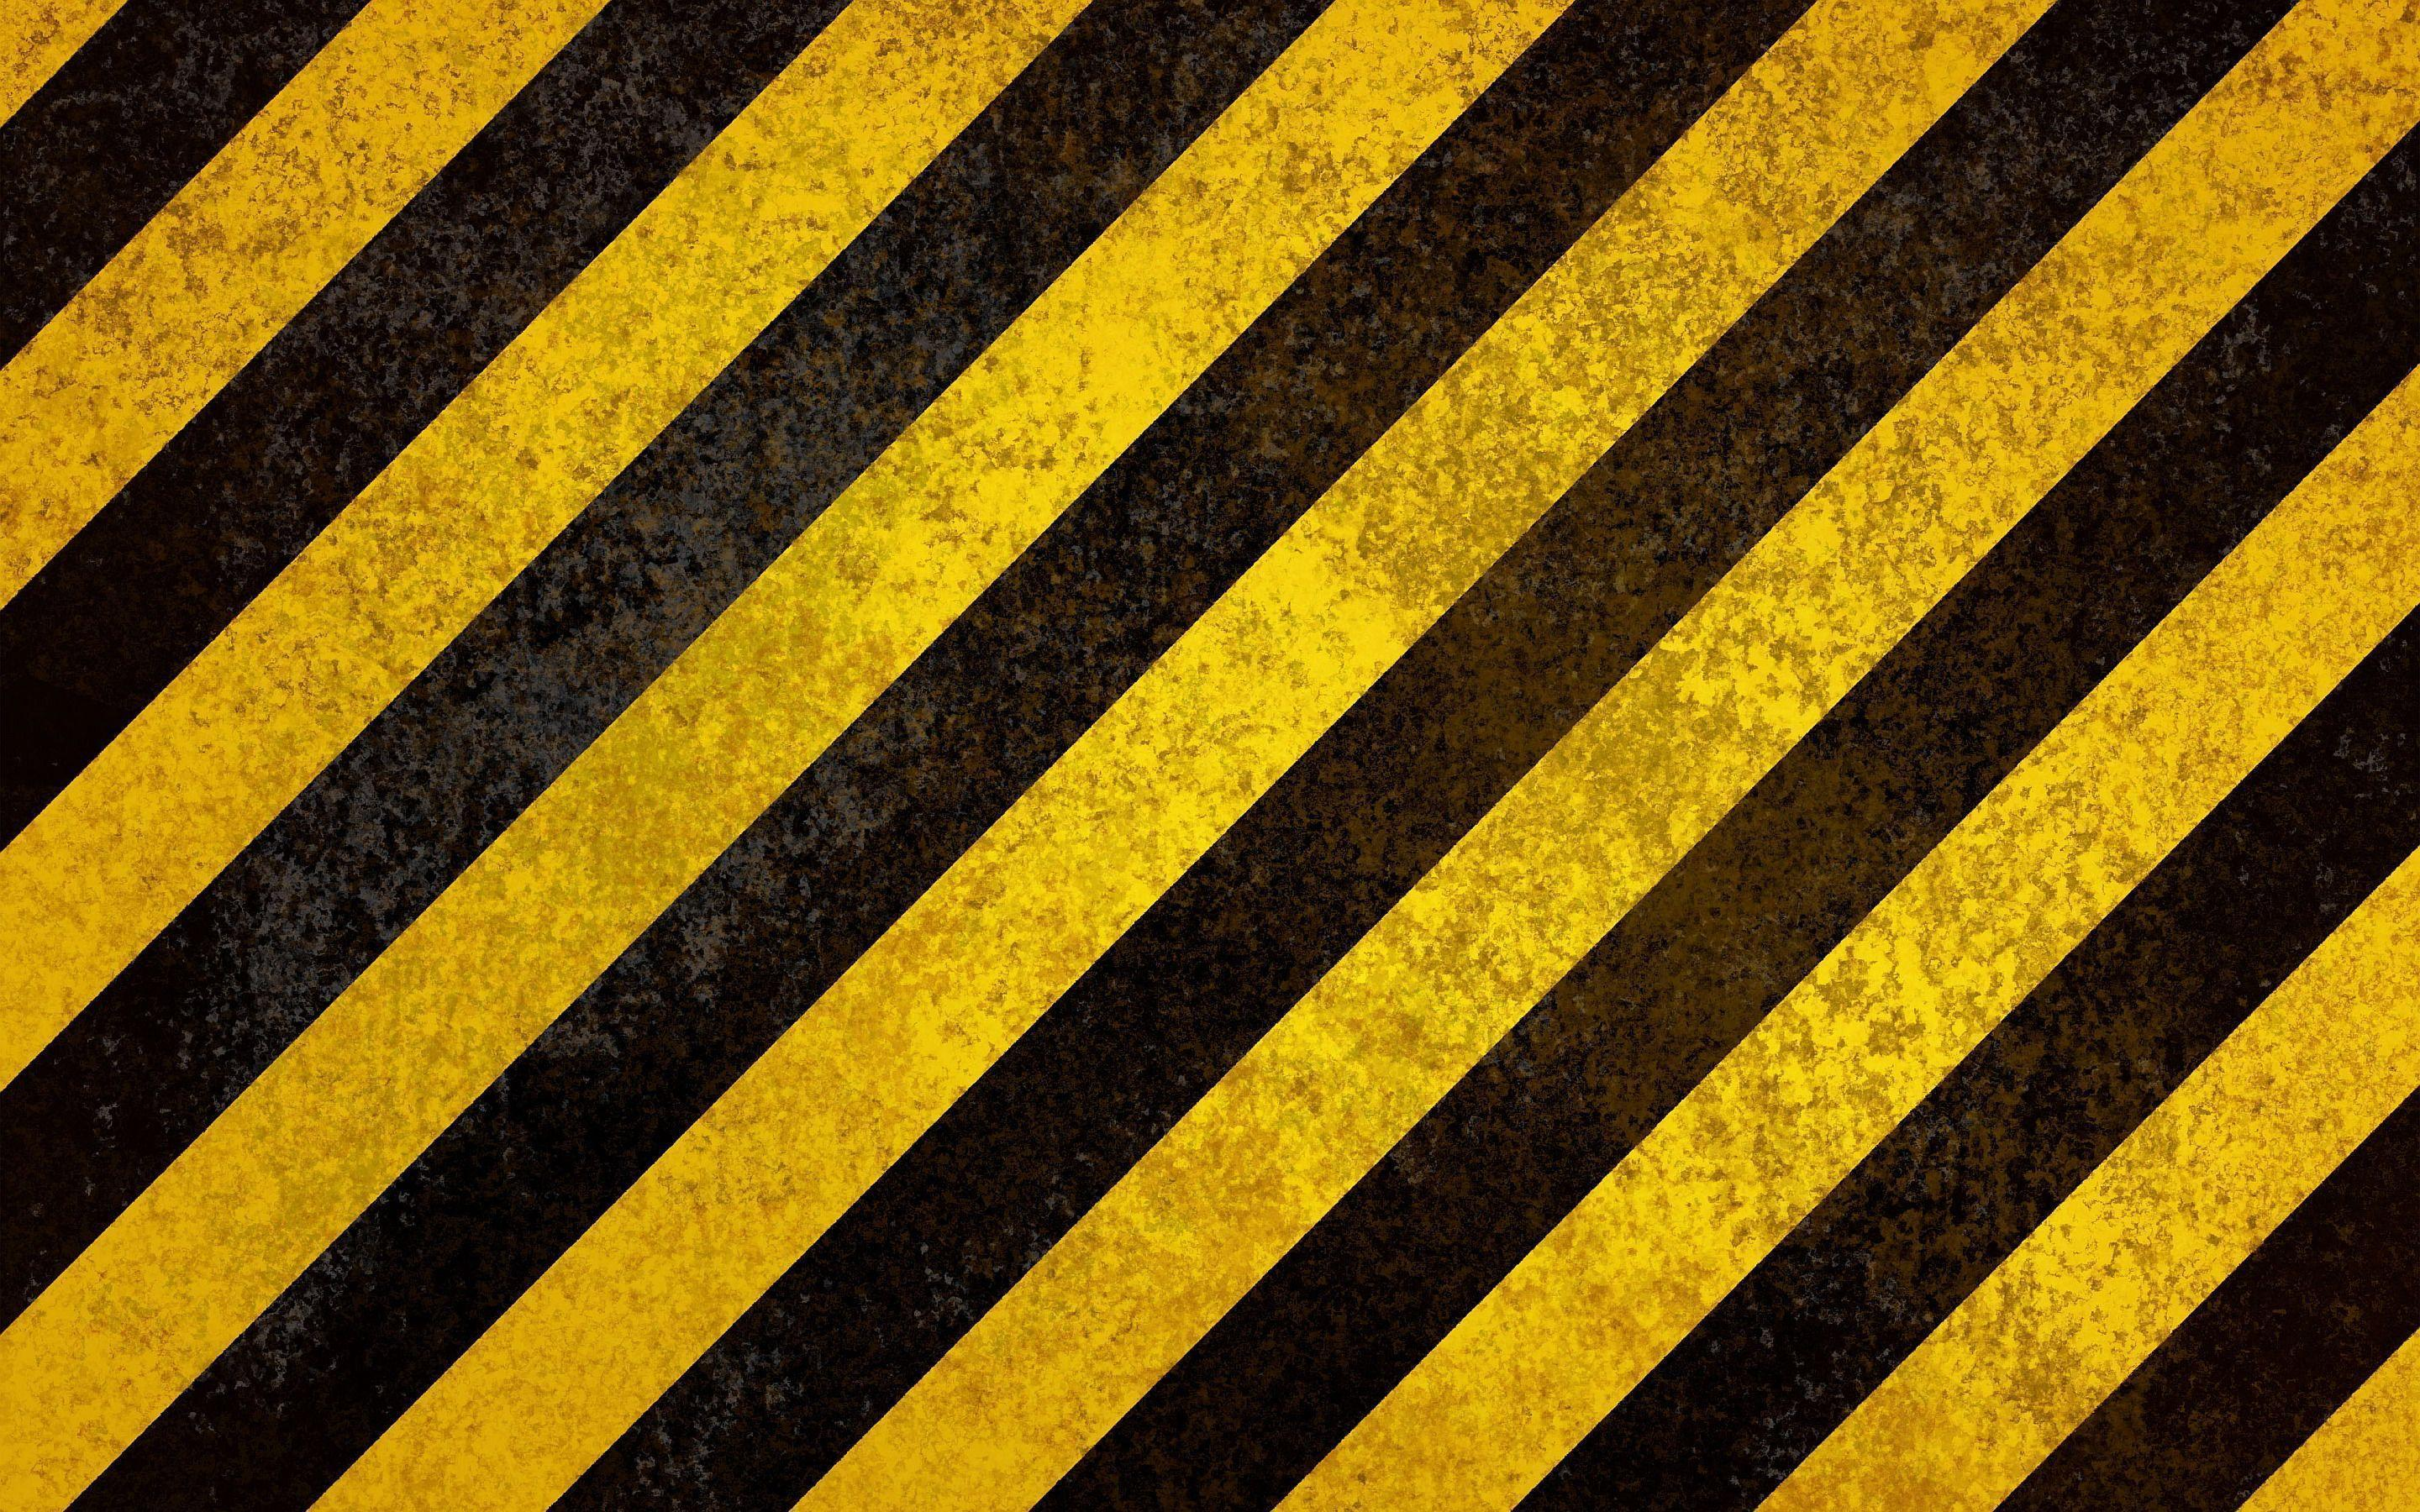 2880x1800 - Yellow and Black 10